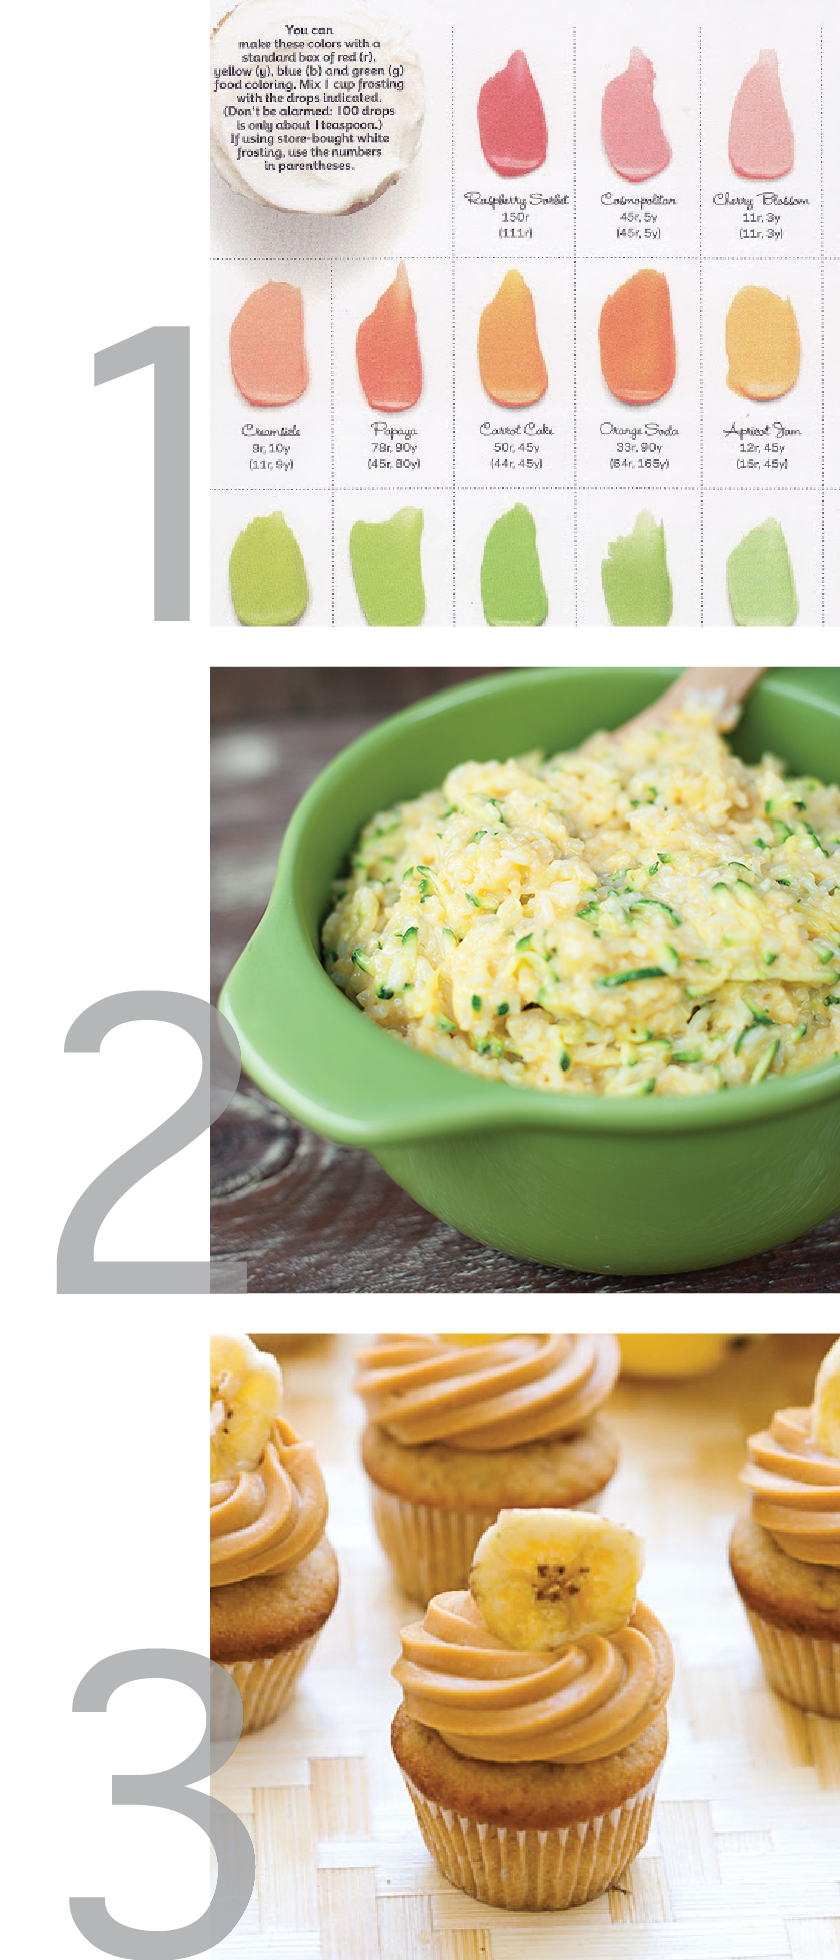 This Weekly Pinsperation image is a clean simple graphic showing the images of three pinterest pins, including a frosting color guide, cheesy zucchini rice and triple banana double caramel mini cupcakes.